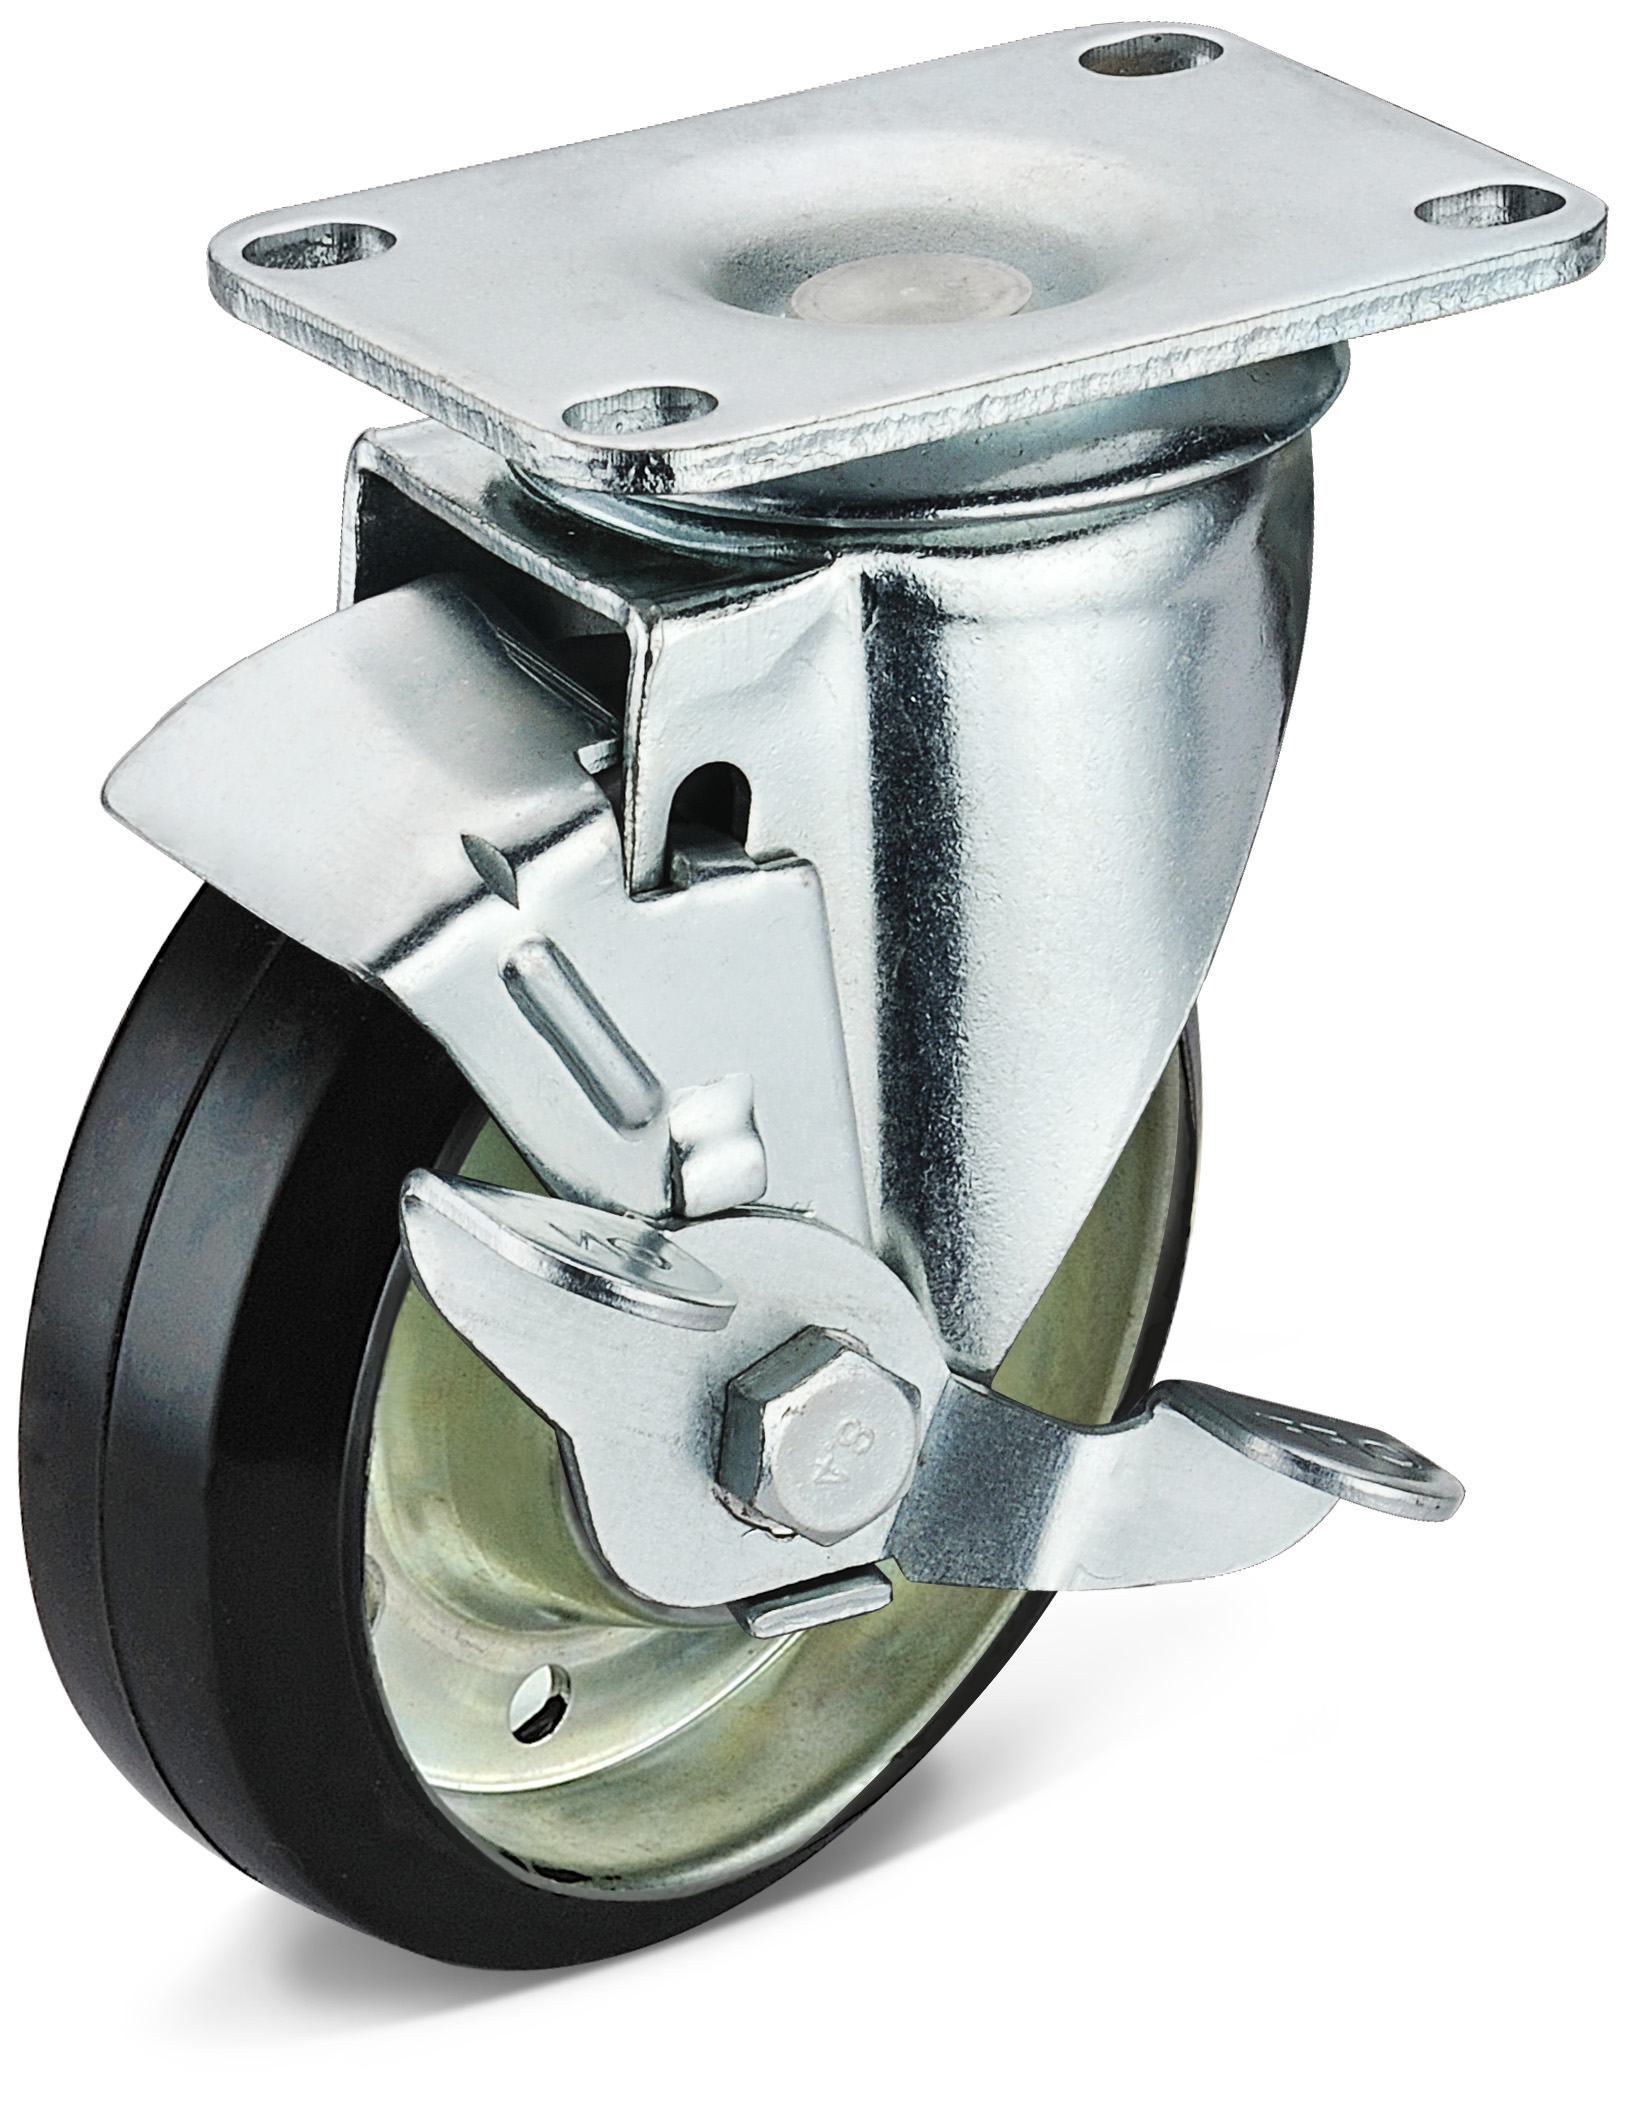 Heavy Duty Casters for warehouse